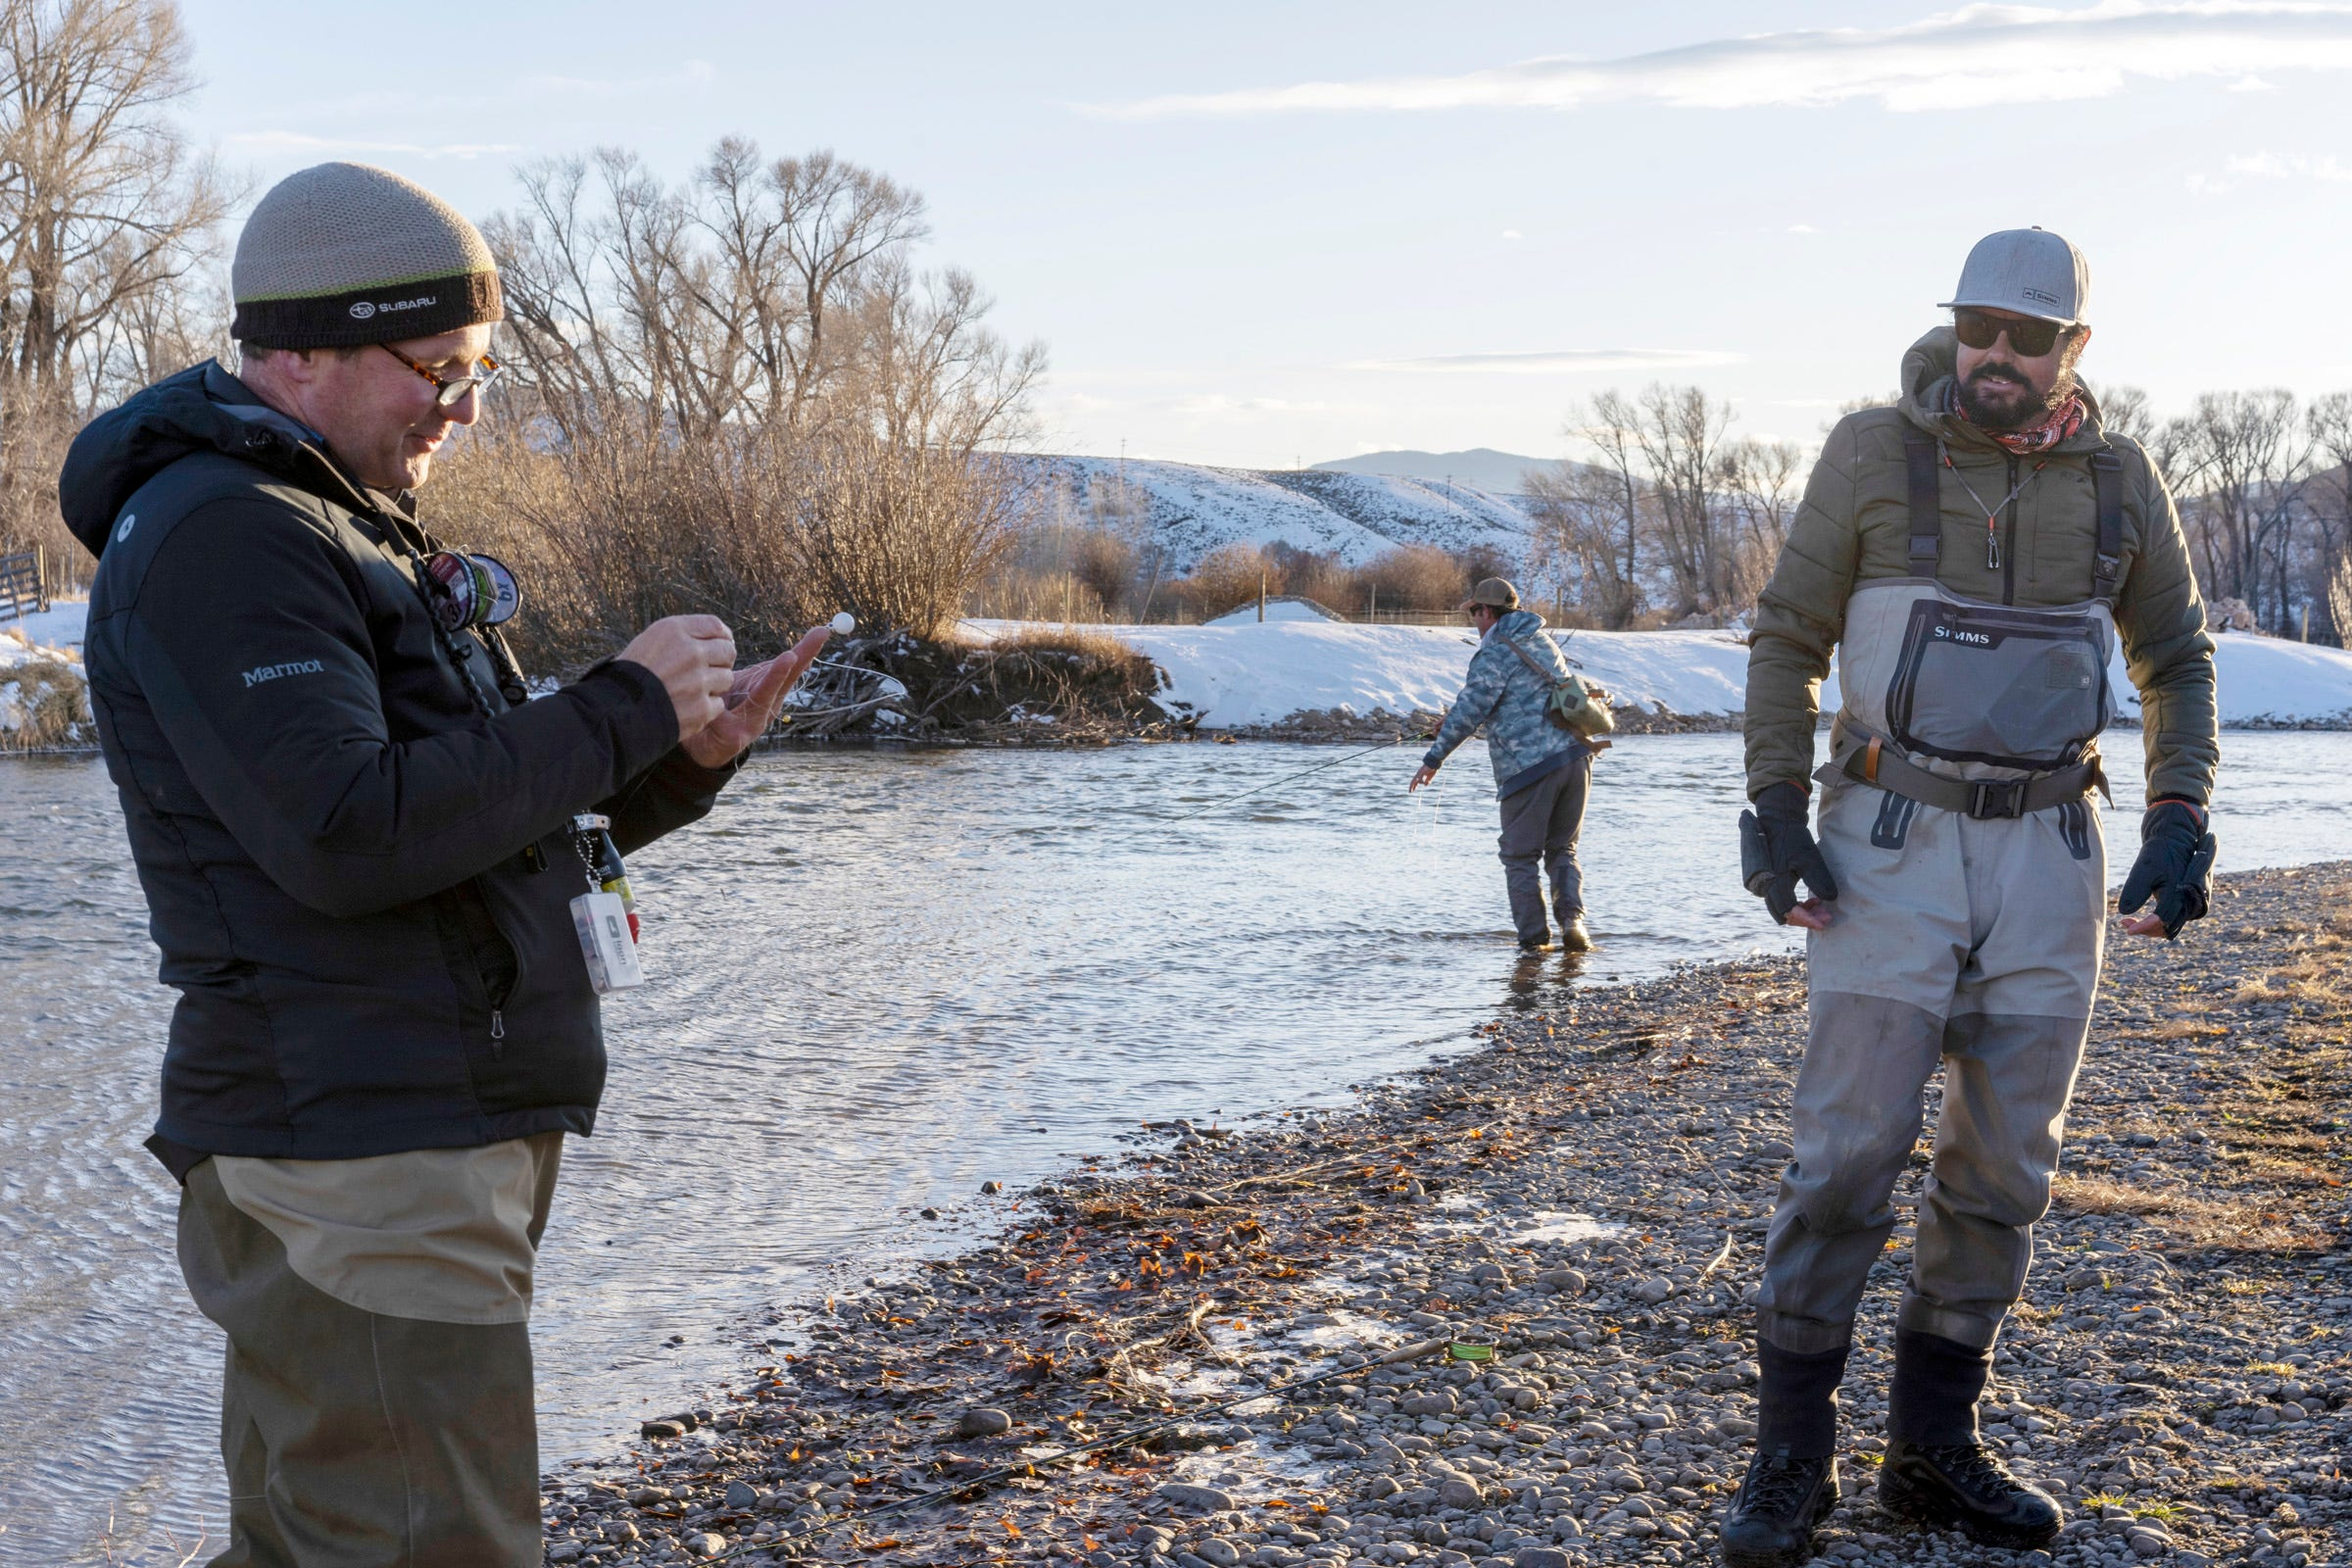 Andy Mueller, left, general manager of the Colorado River District, and Matt Rice, center, director of Colorado River programs for American Rivers, visit with rancher Paul Bruchez, right, as they fish for trout in the Colorado River near Kremmling, Colorado. They met to celebrate after voters passed a ballot measure that will raise taxes and generate nearly $5 million a year for the Colorado River District.